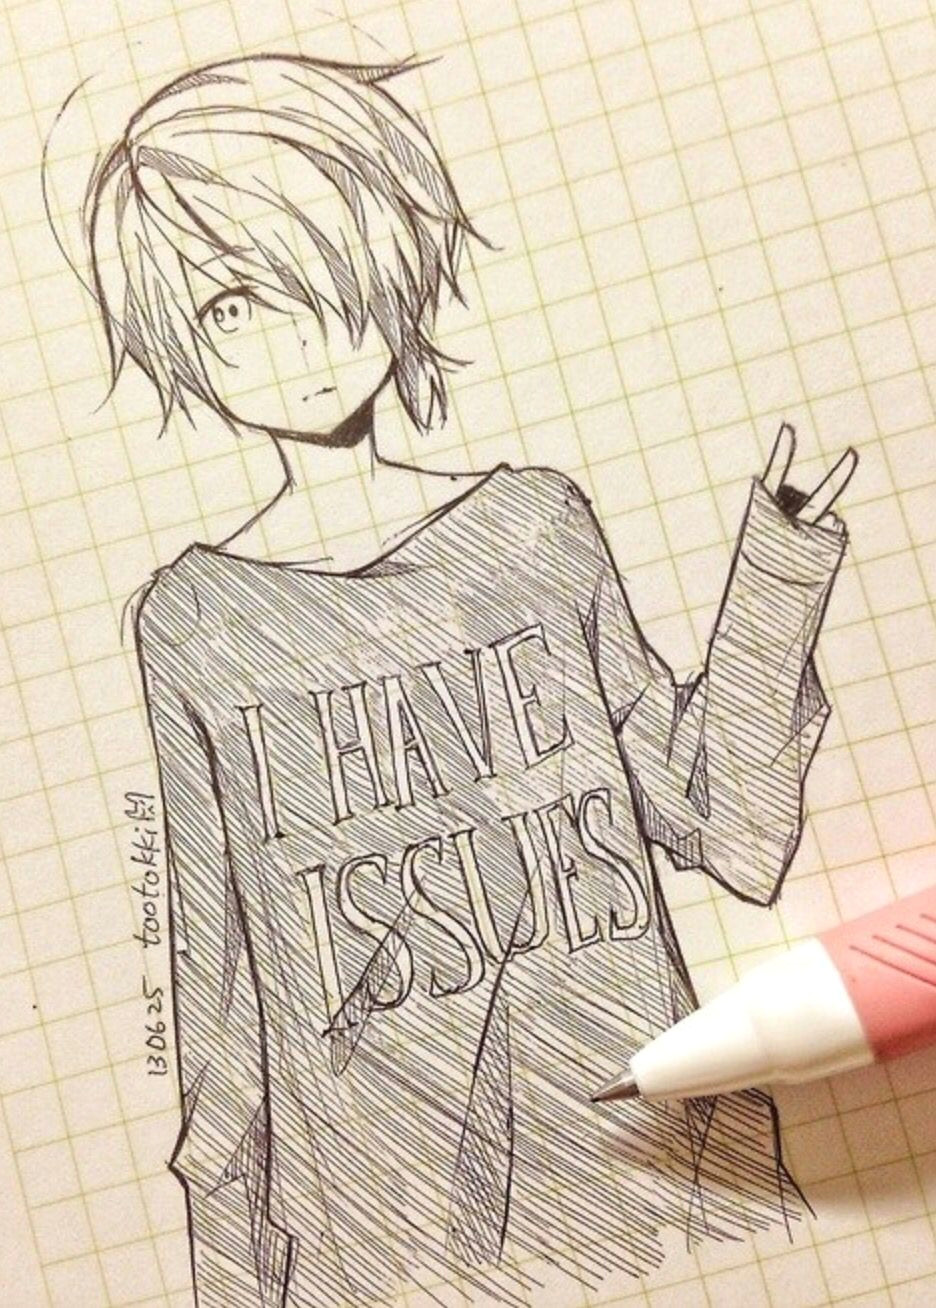 Drawing Anime Hoodies Cute Anime Drawing tootokki I Have issues Sweater Anime Drawings